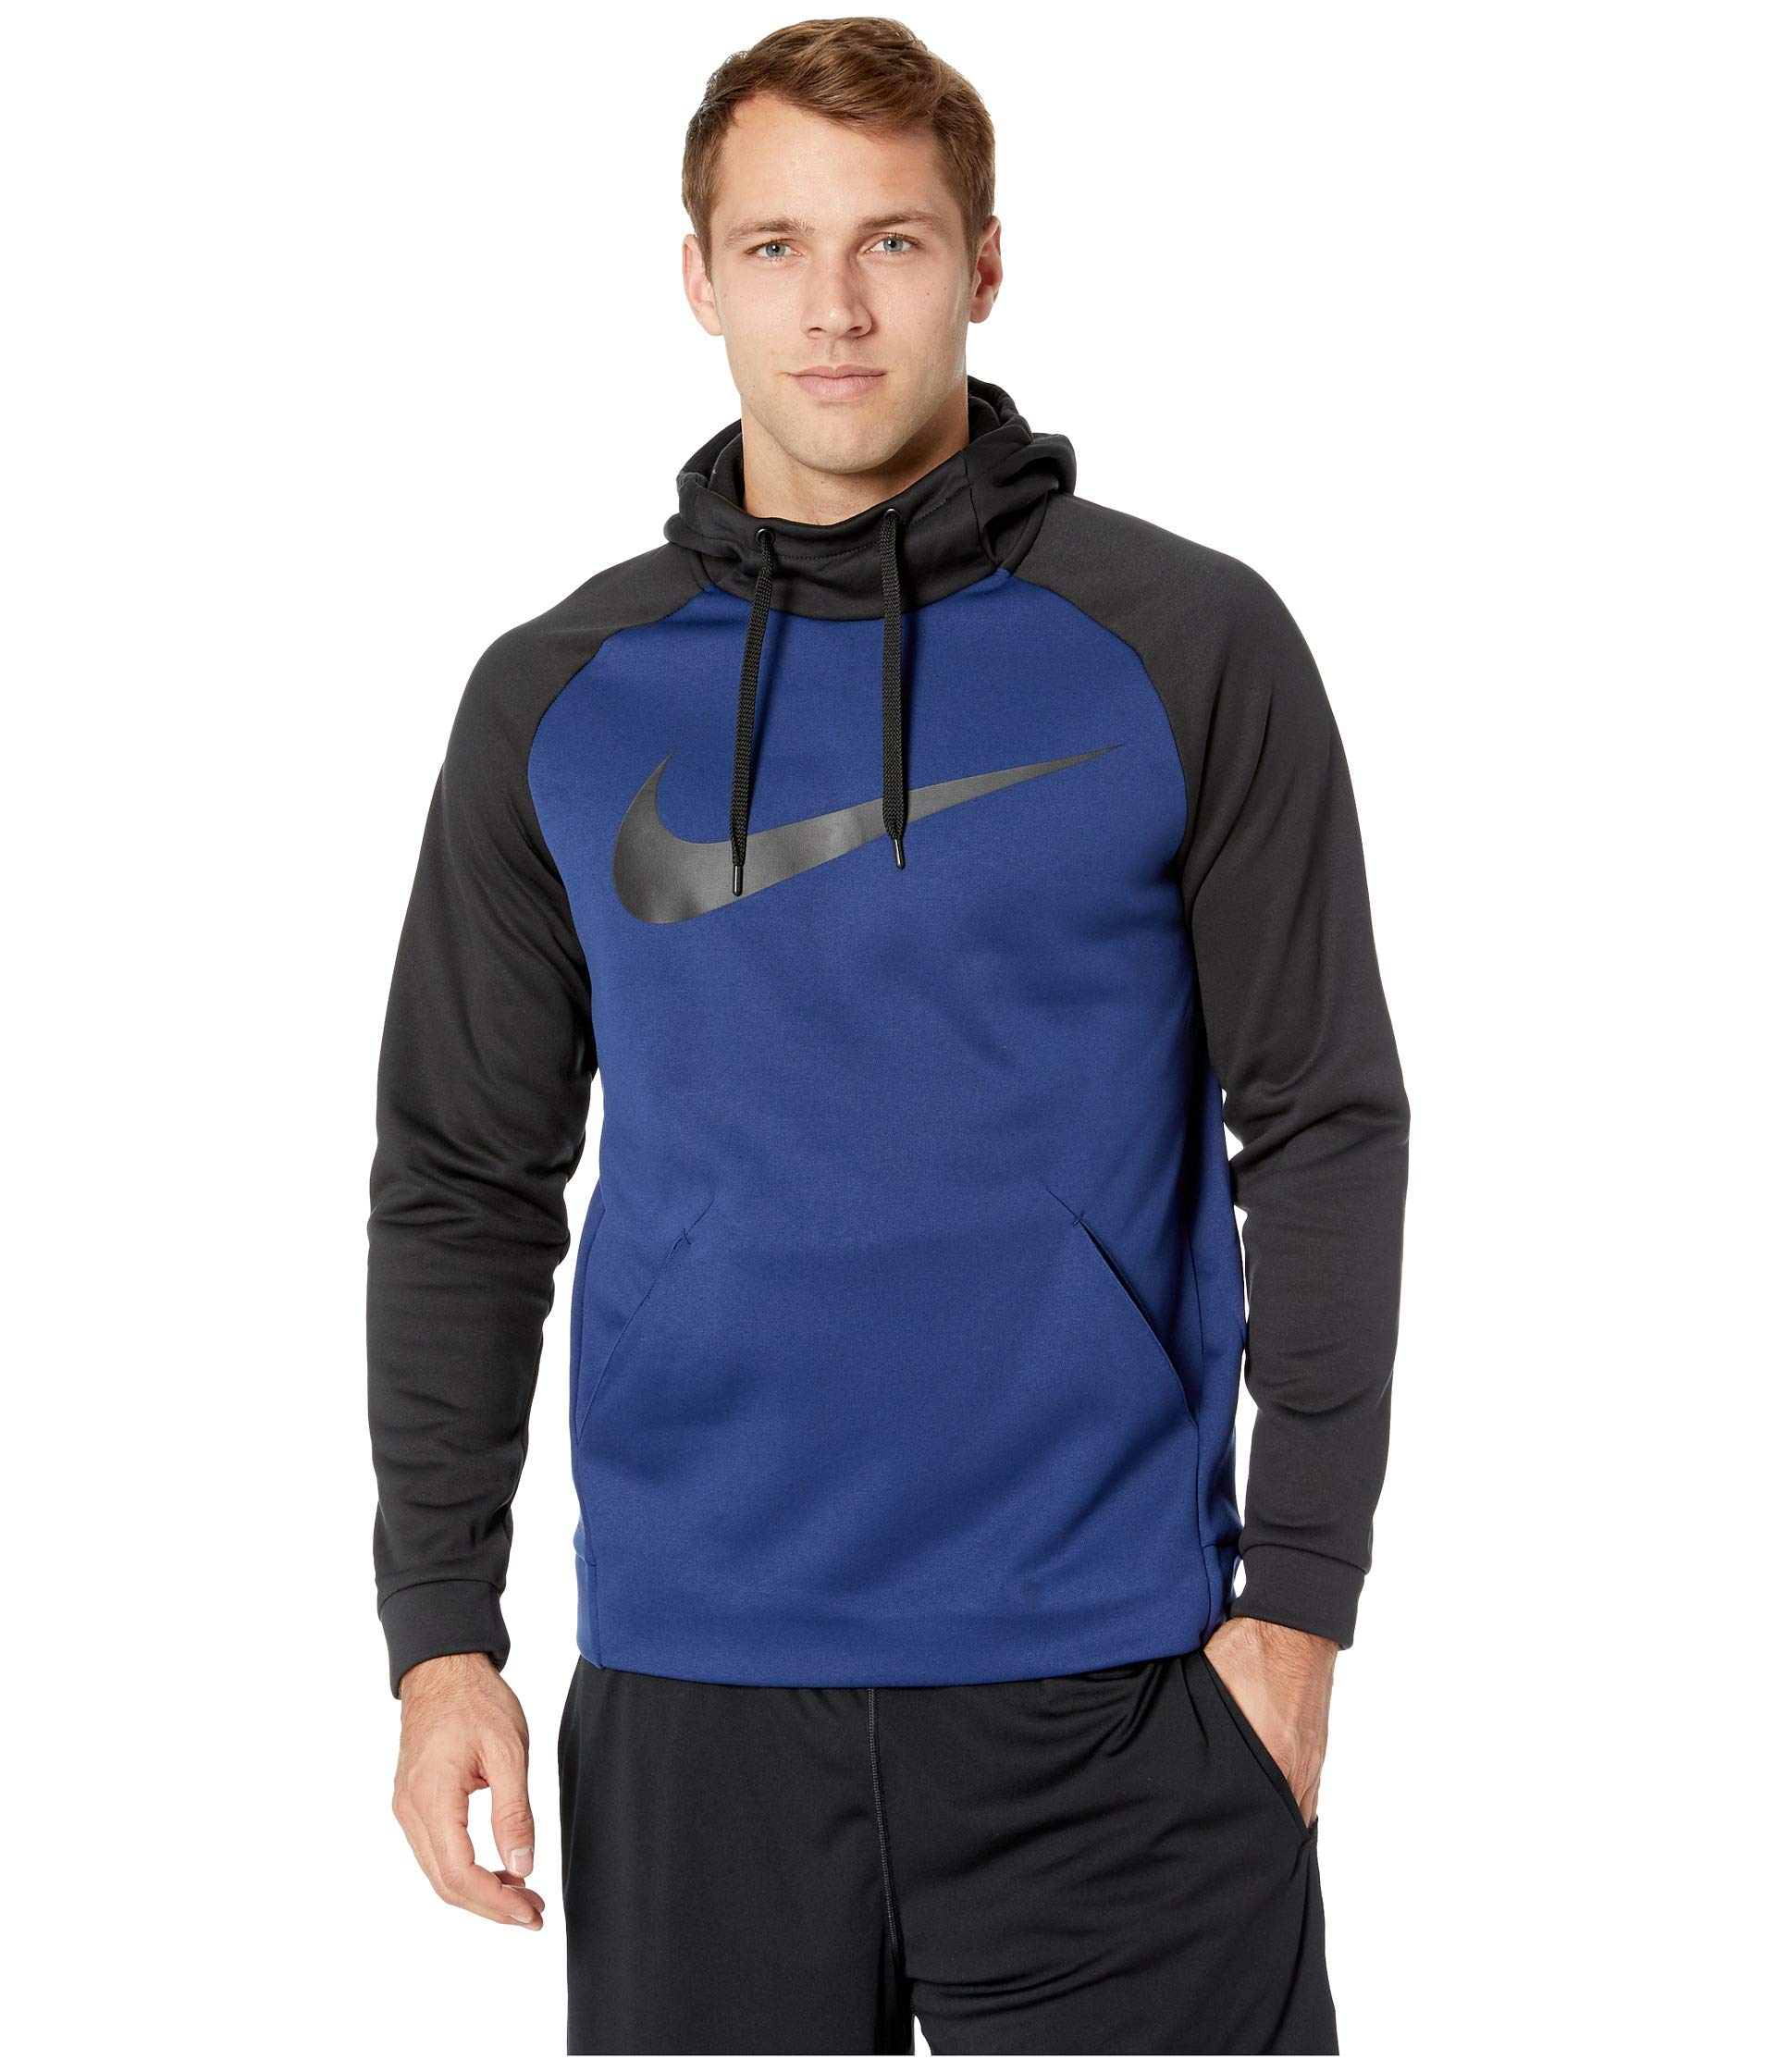 Nike Mens Therma Swoosh Essential Pull Over Hoodie Blue Void/Black 931991-478 Size Large by Nike